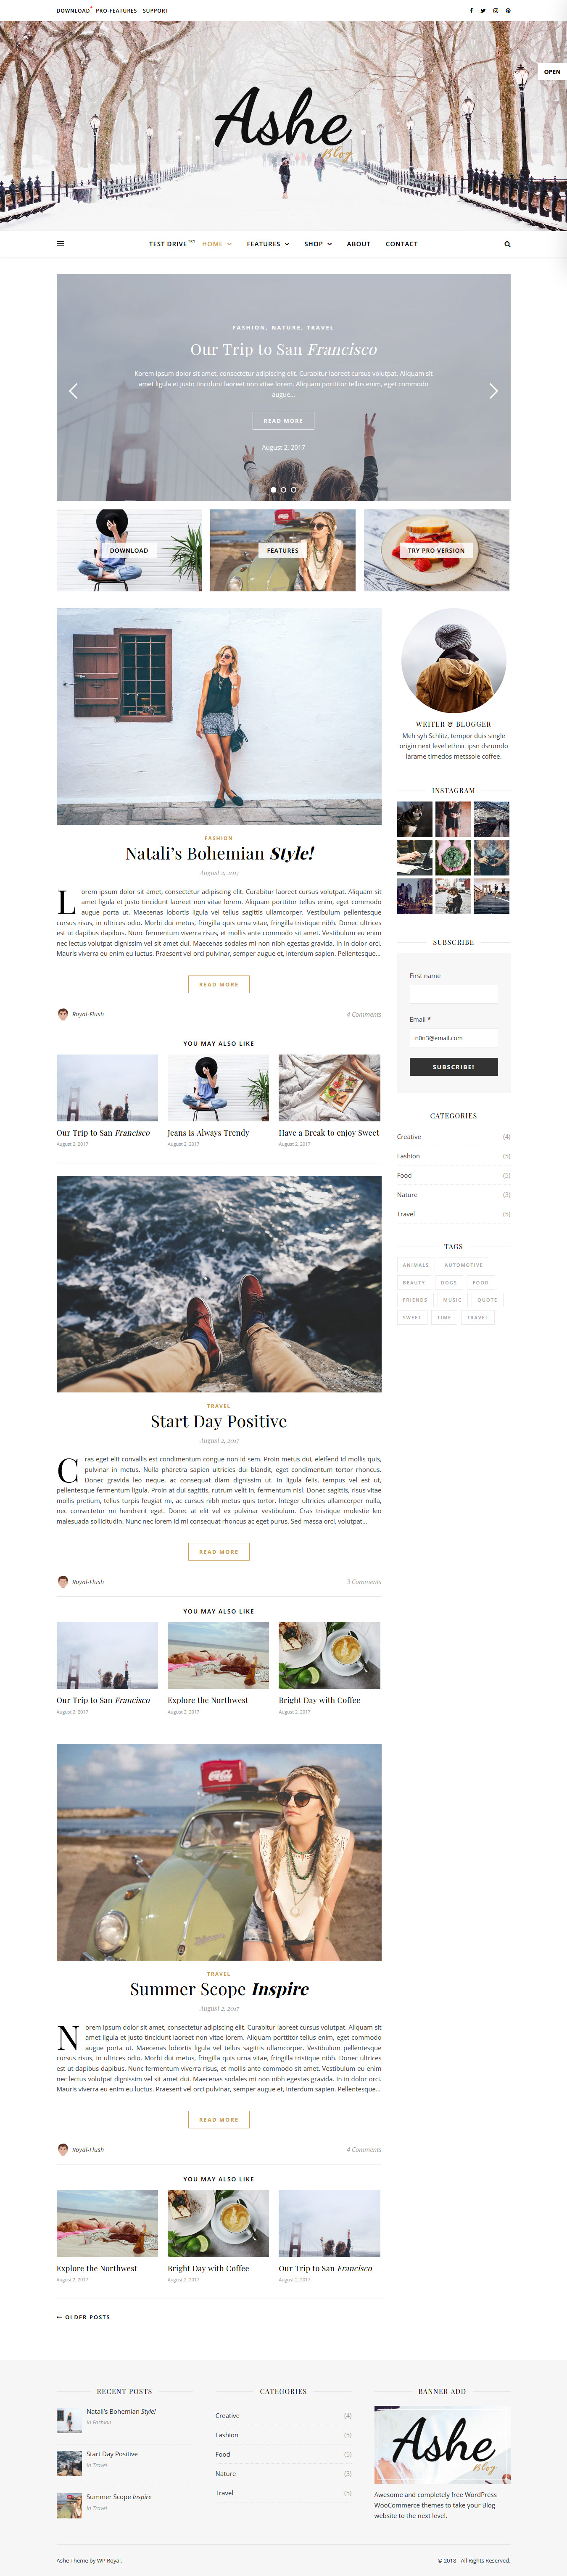 Ashe - Best Free Fullscreen WordPress Theme